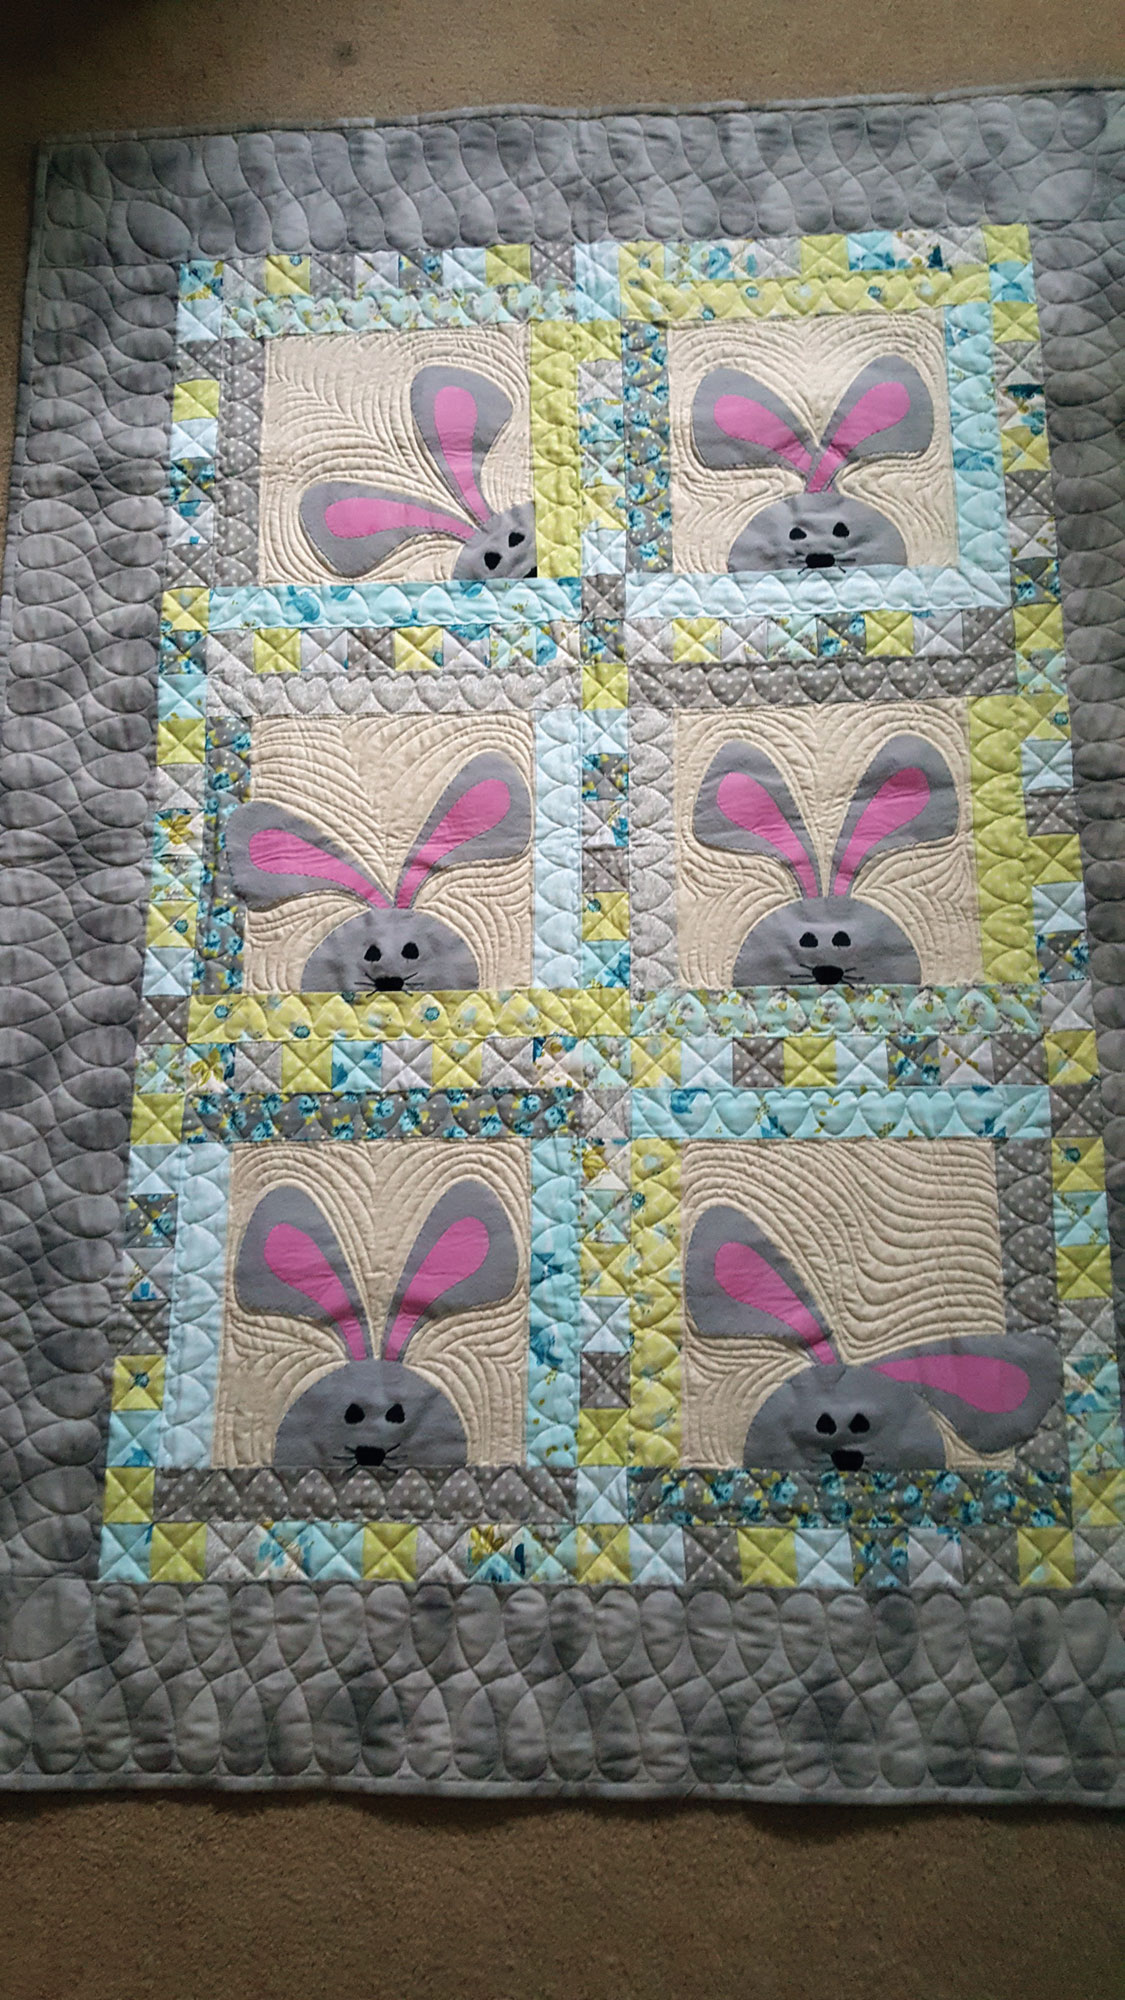 Peek-a-Boo Bunnies made by Lovina Keim, from Quiltmaker March/April 2017